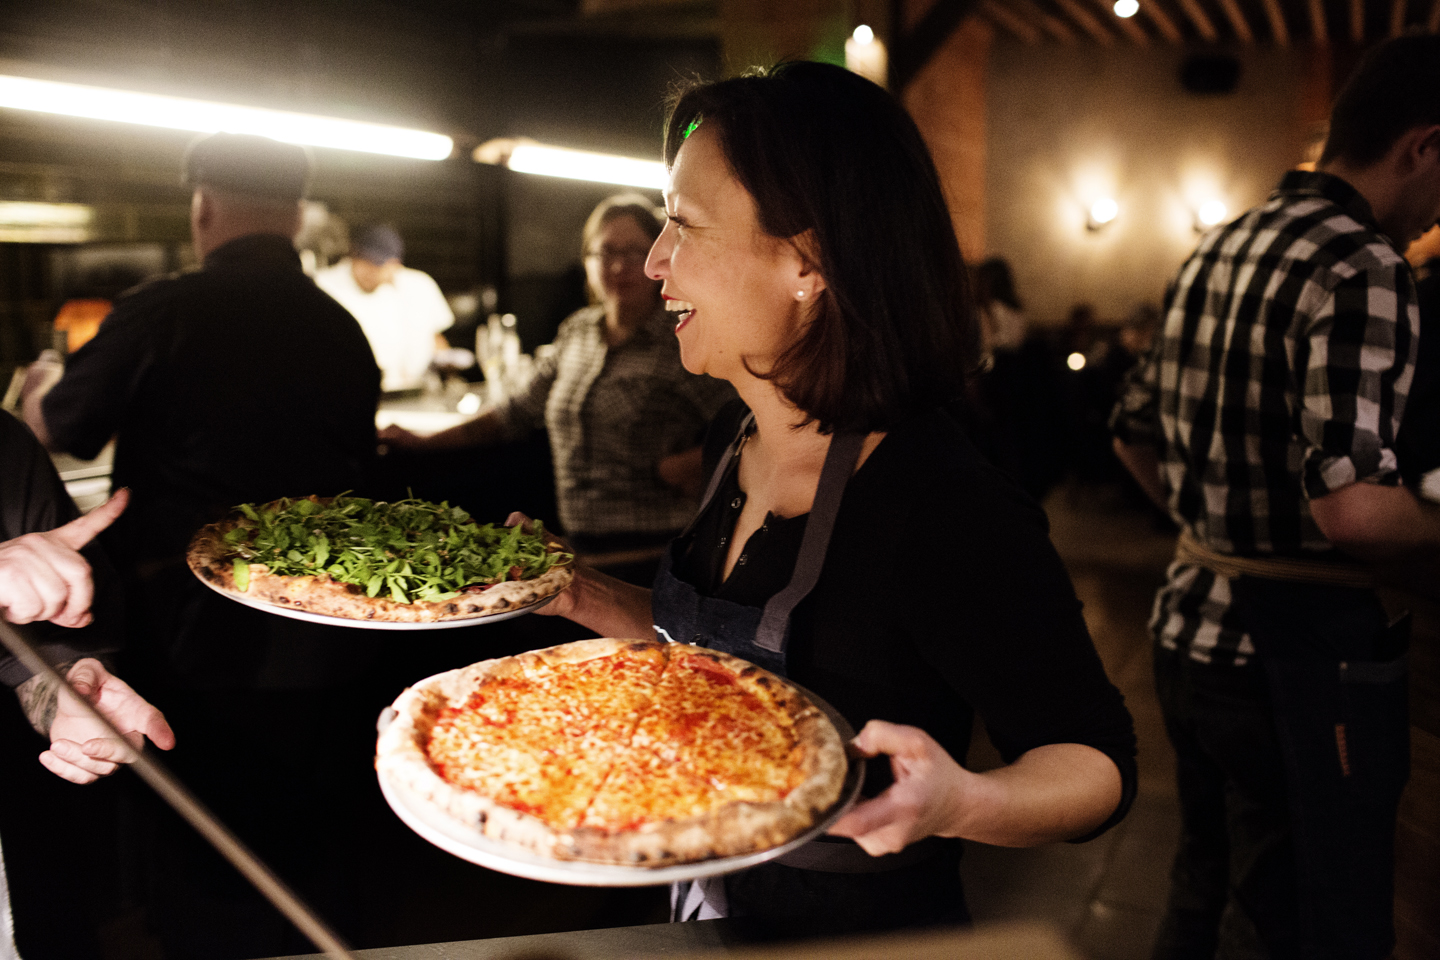 Chef/owner Ann Kim serving pizzas | Young Joni | The Restaurant Project